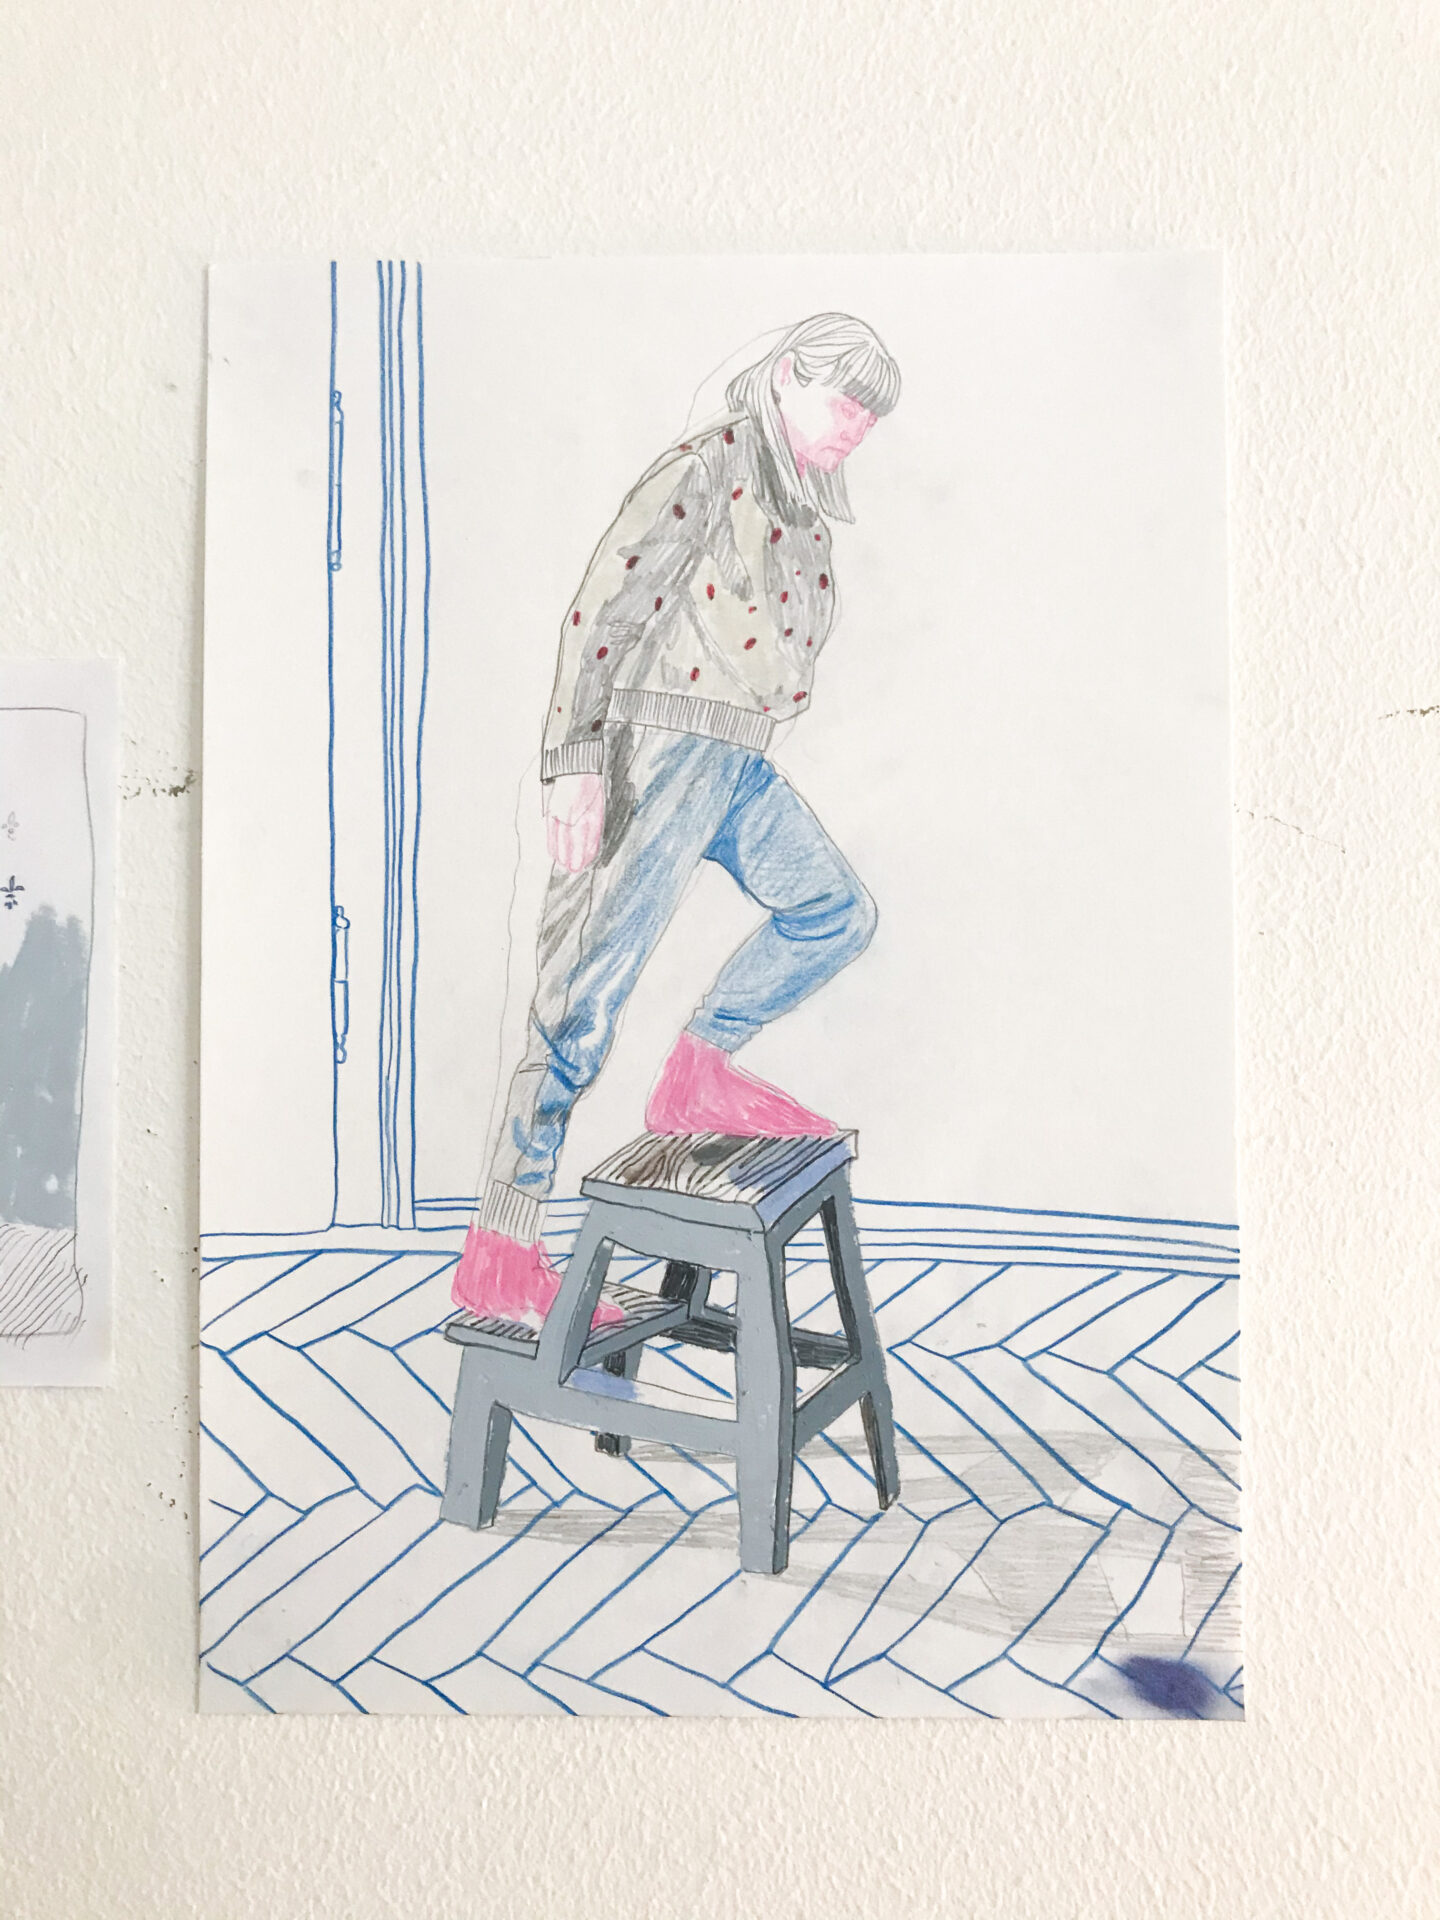 Interactions (Ikea), colored pencil and oil pastel on paper, 29 x 21 cm, 2020, Lisa Breyer